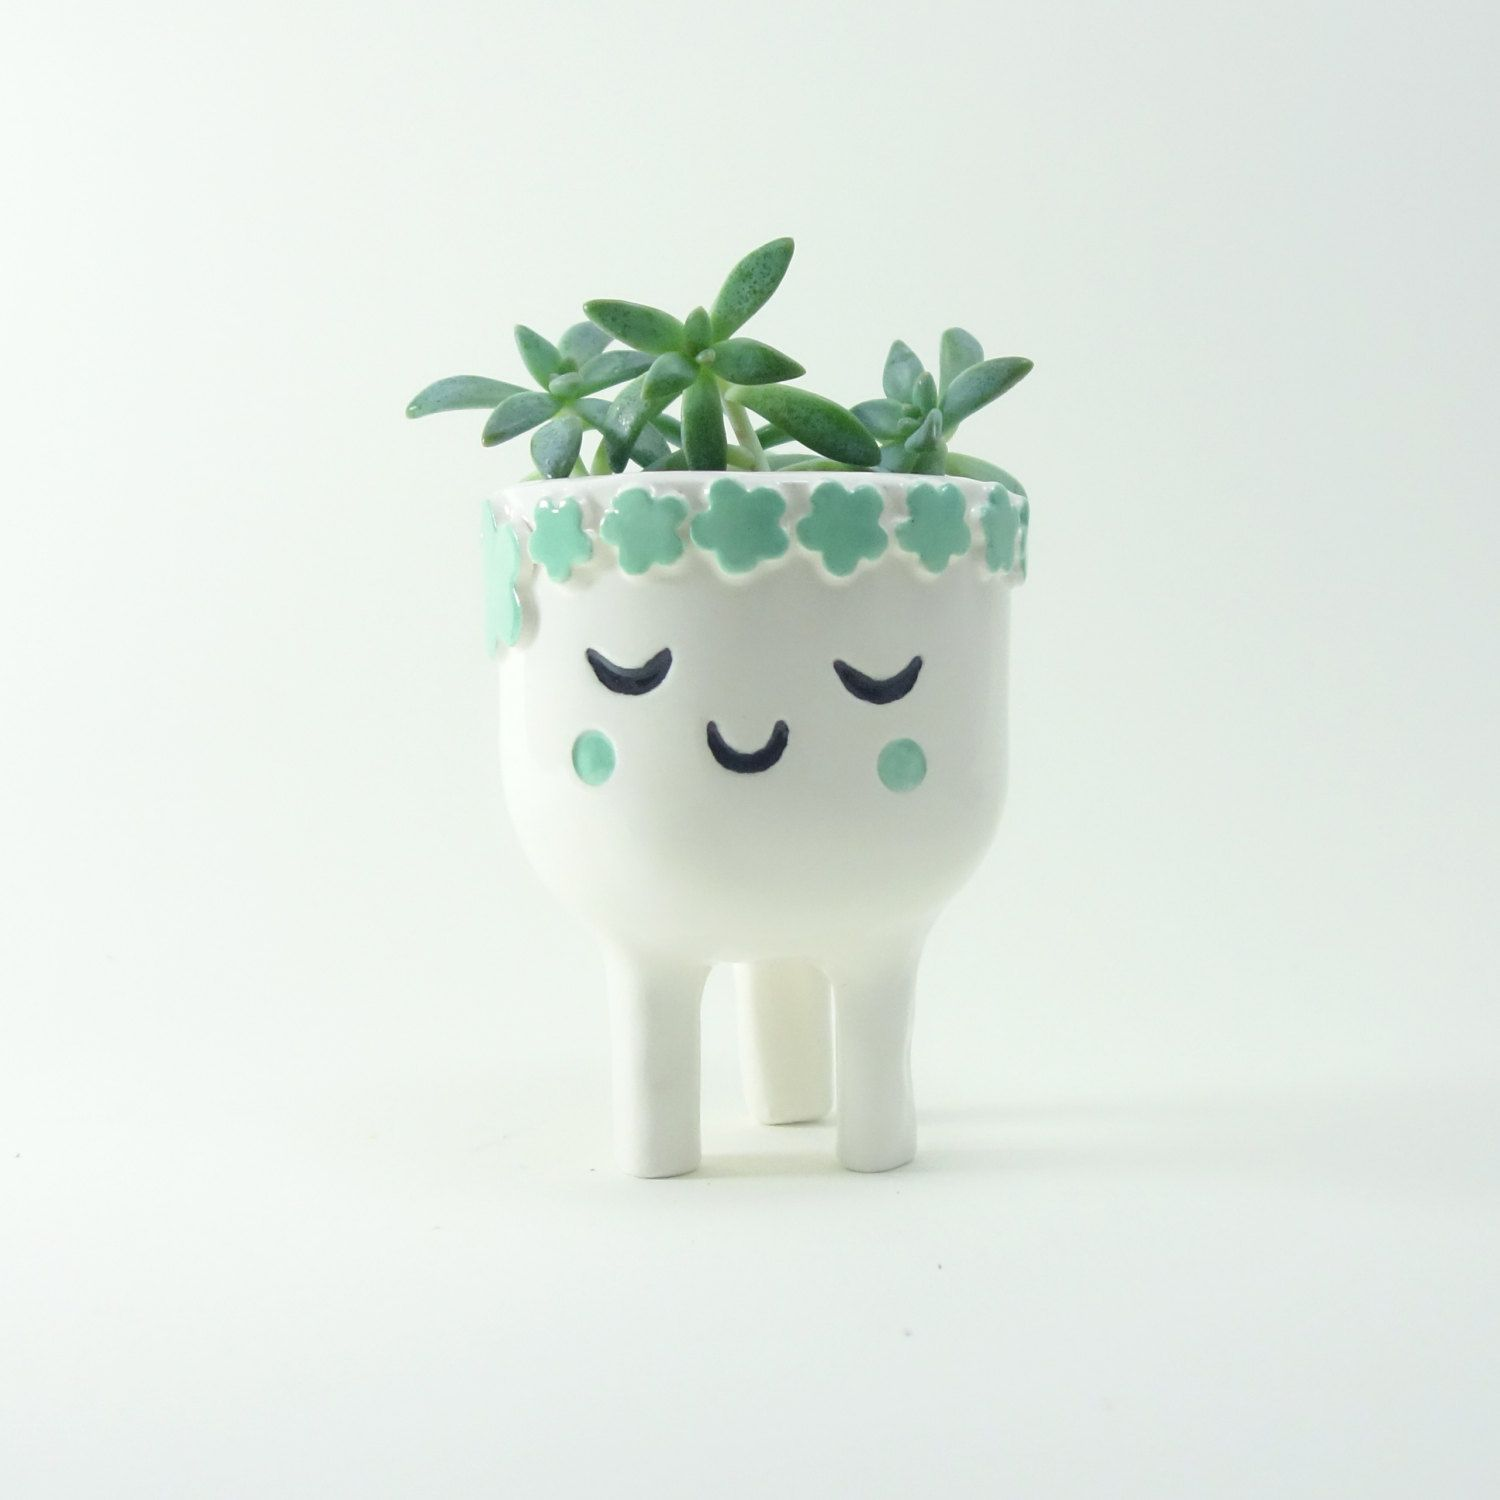 Cactus Planters Pottery Sleeping Lady Planter Face Plant Pot Quirky White